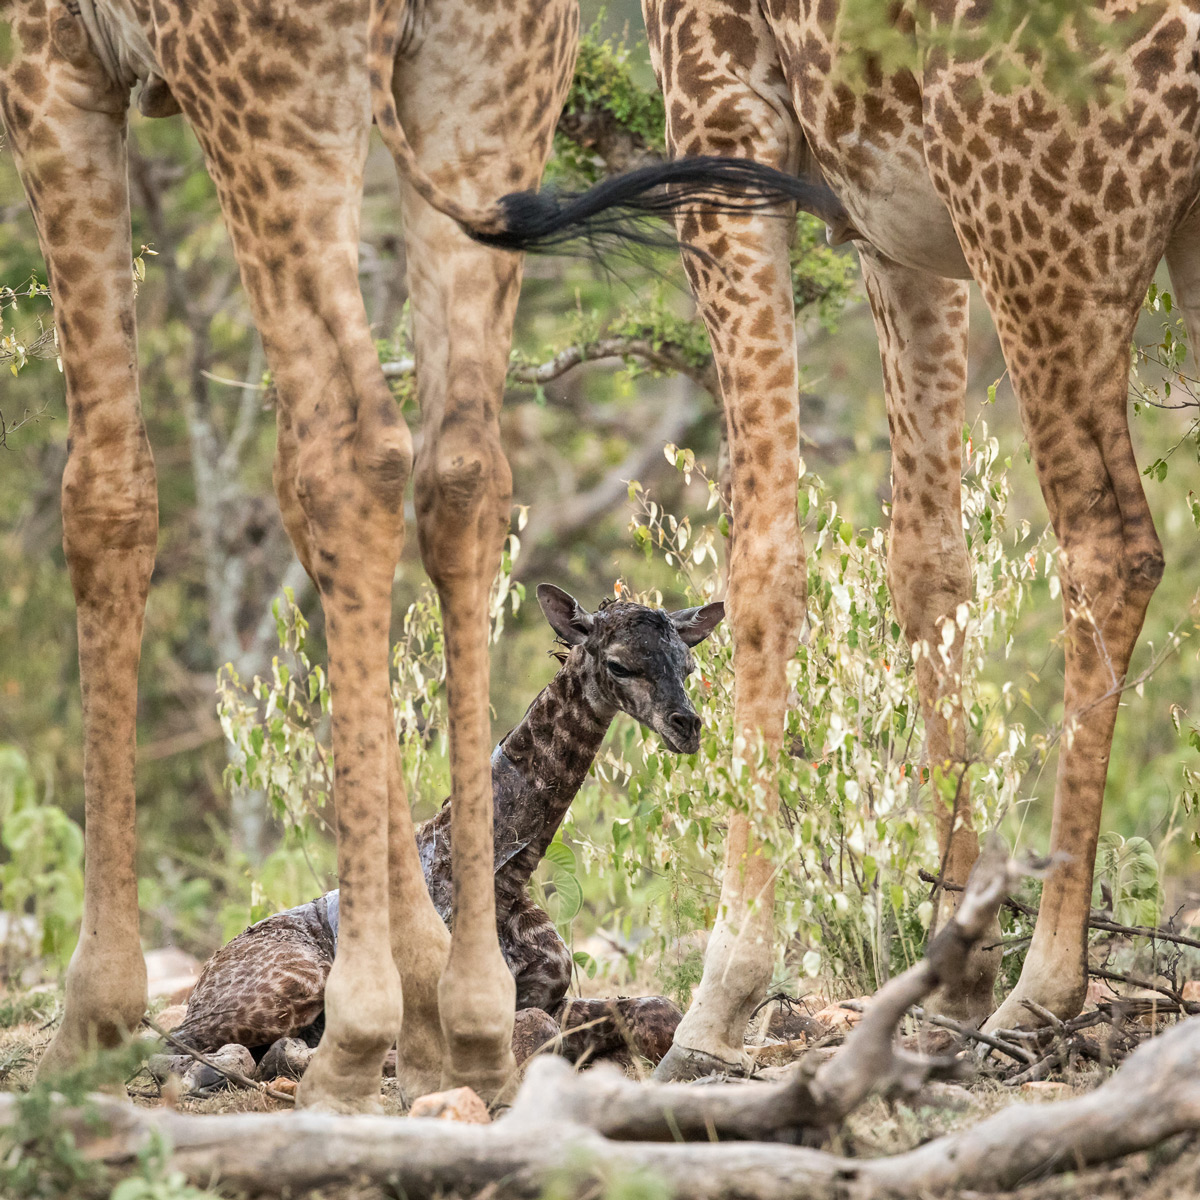 A vulnerable newborn giraffe sits under the protection of its mother and a male that had kept a nearby watch during the birth before moving over to greet the new family member, Maasai Mara National Reserve, Kenya © Kellie Netherwood